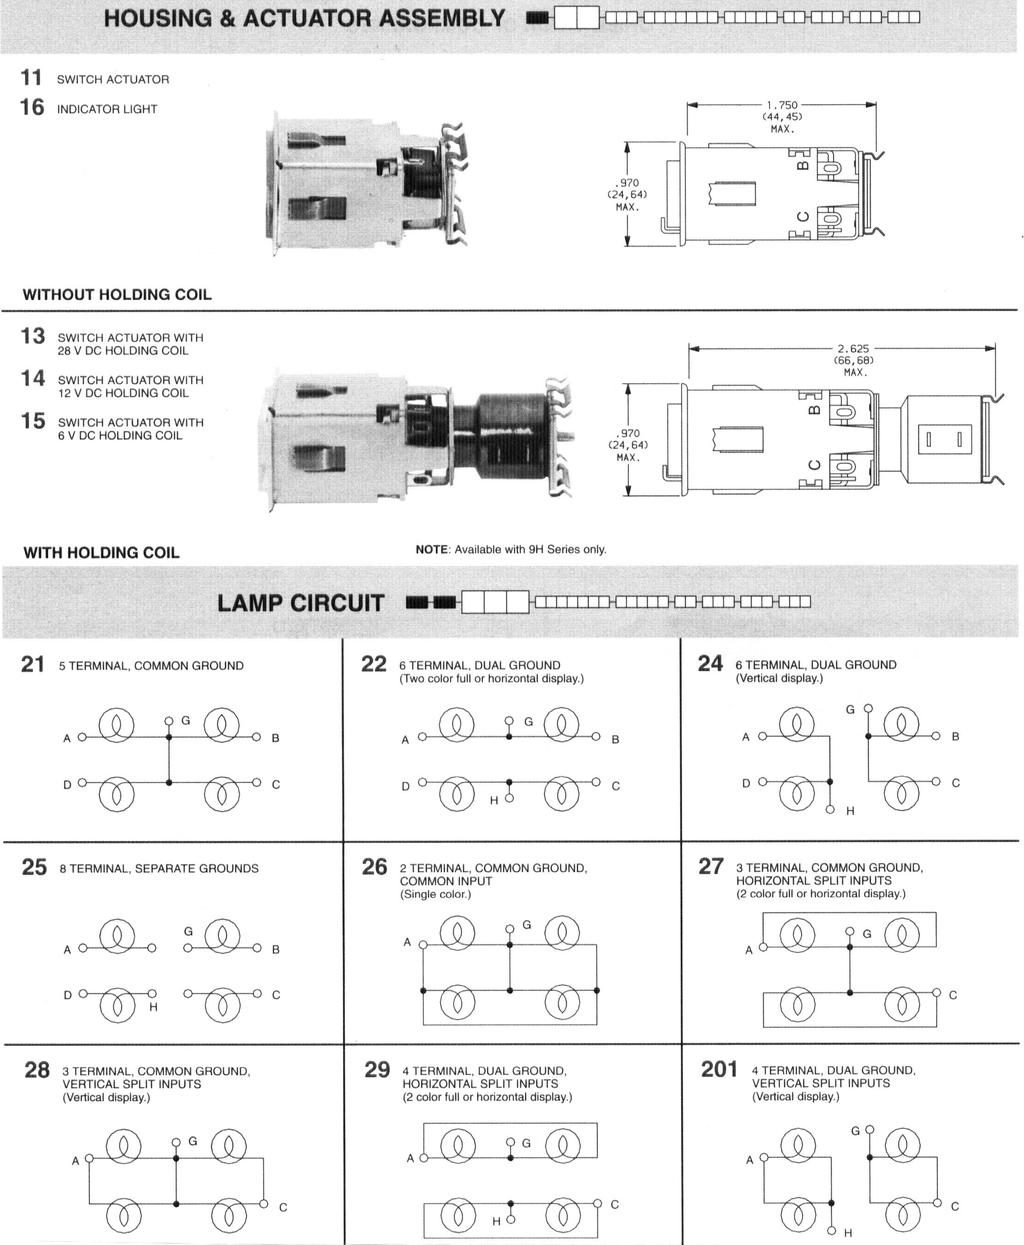 9 9m 9h Series Lighted Pushbutton Controls Indicators Pdf How To Wire Push Button Switch 15 A 3 Standard 4 Lamp Commericial Switches Military High Shock Illuminated Conforms Mil Prf 22885